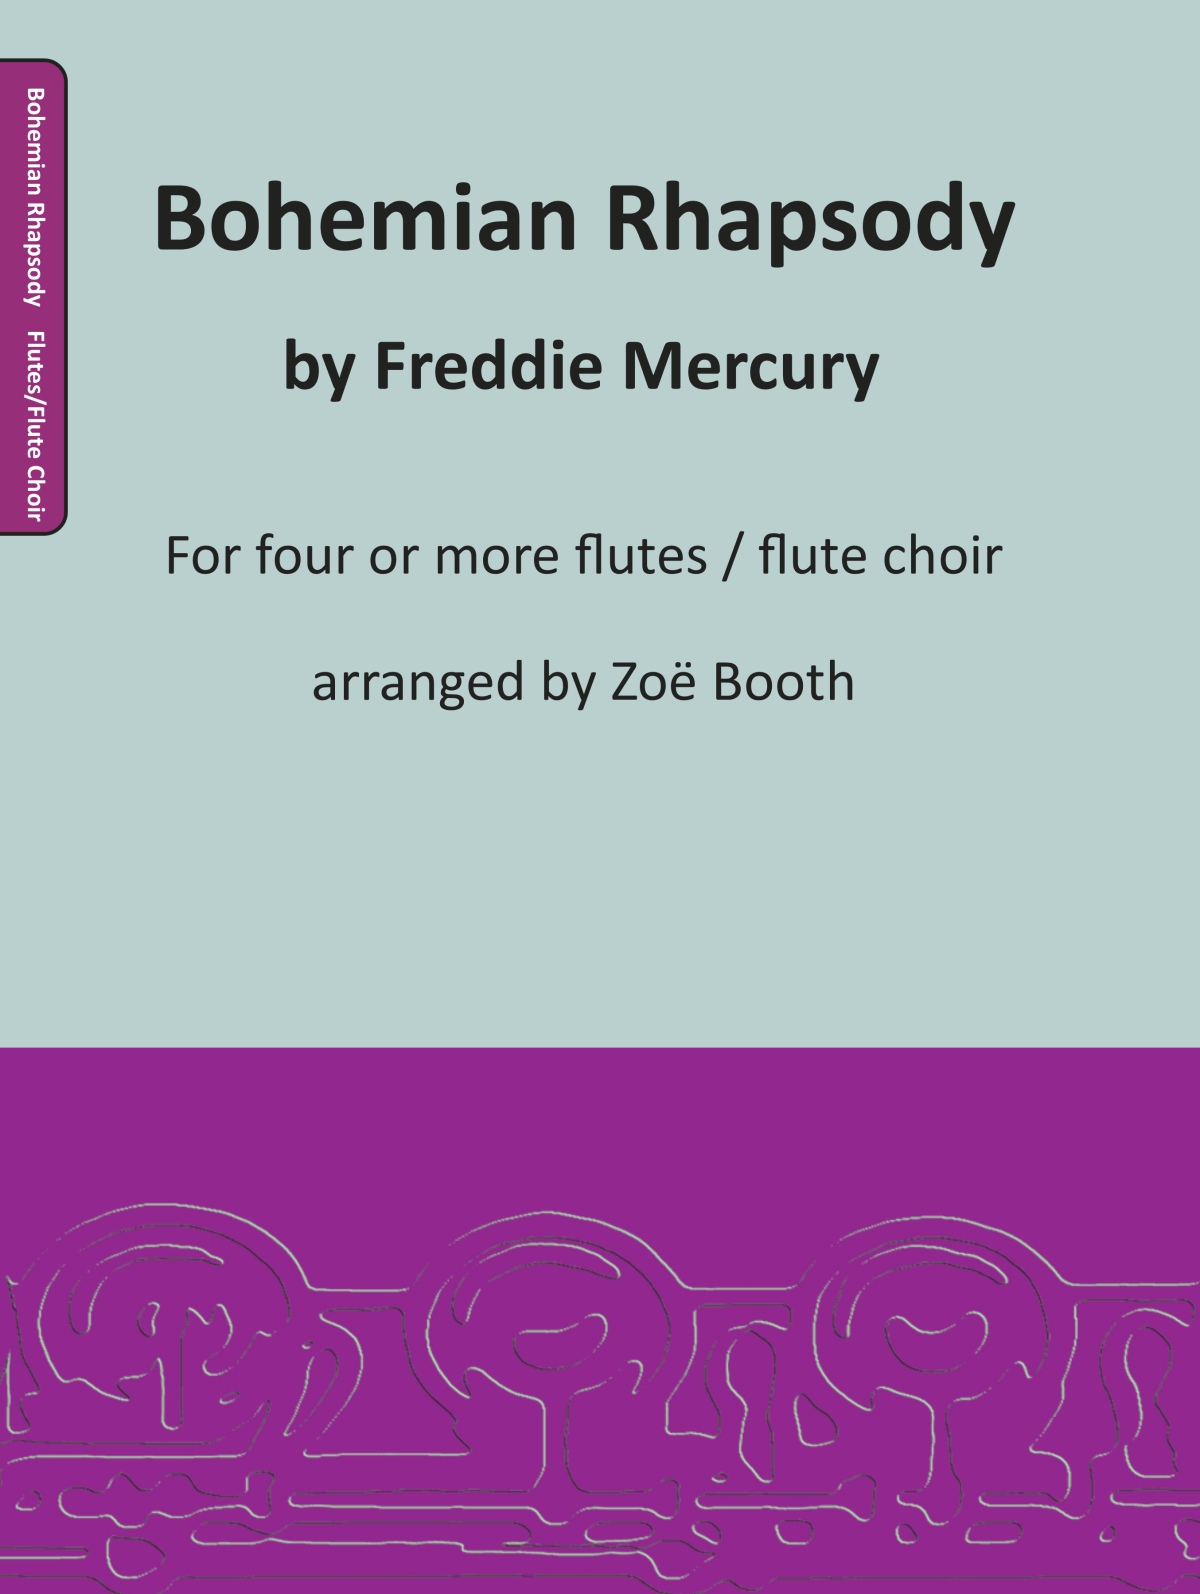 Bohemian Rhapsody by Freddie Mercury, arranged by Zoë Booth for four or more flutes/flute choir